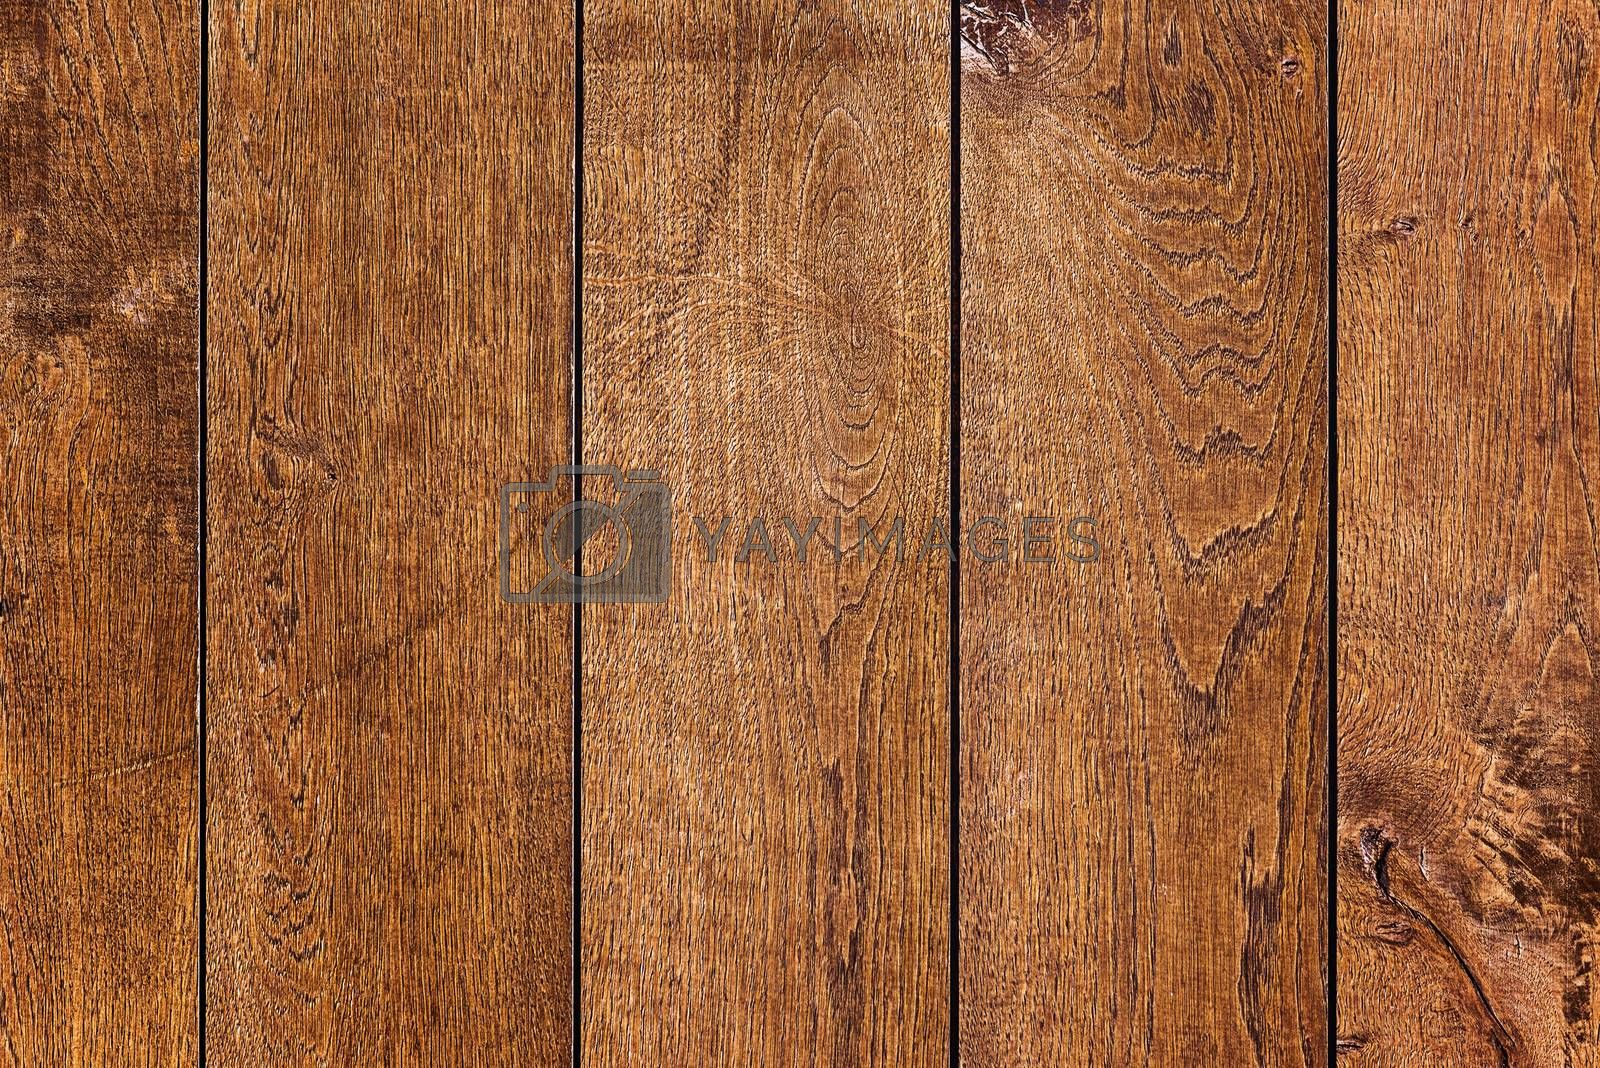 Detailed Wood Fence Texture Pattern as Background